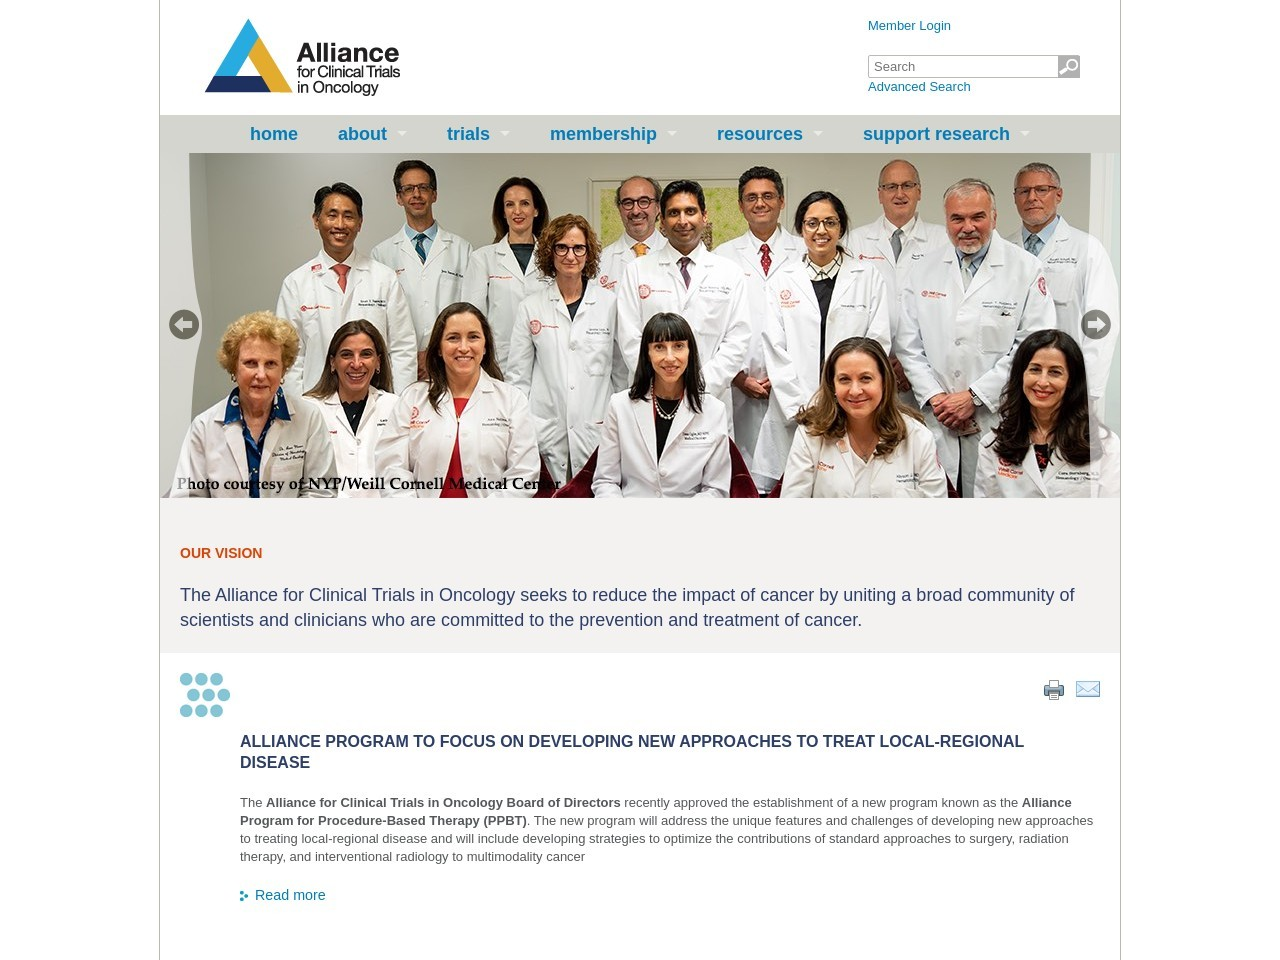 allianceforclinicaltrialsinoncology.org